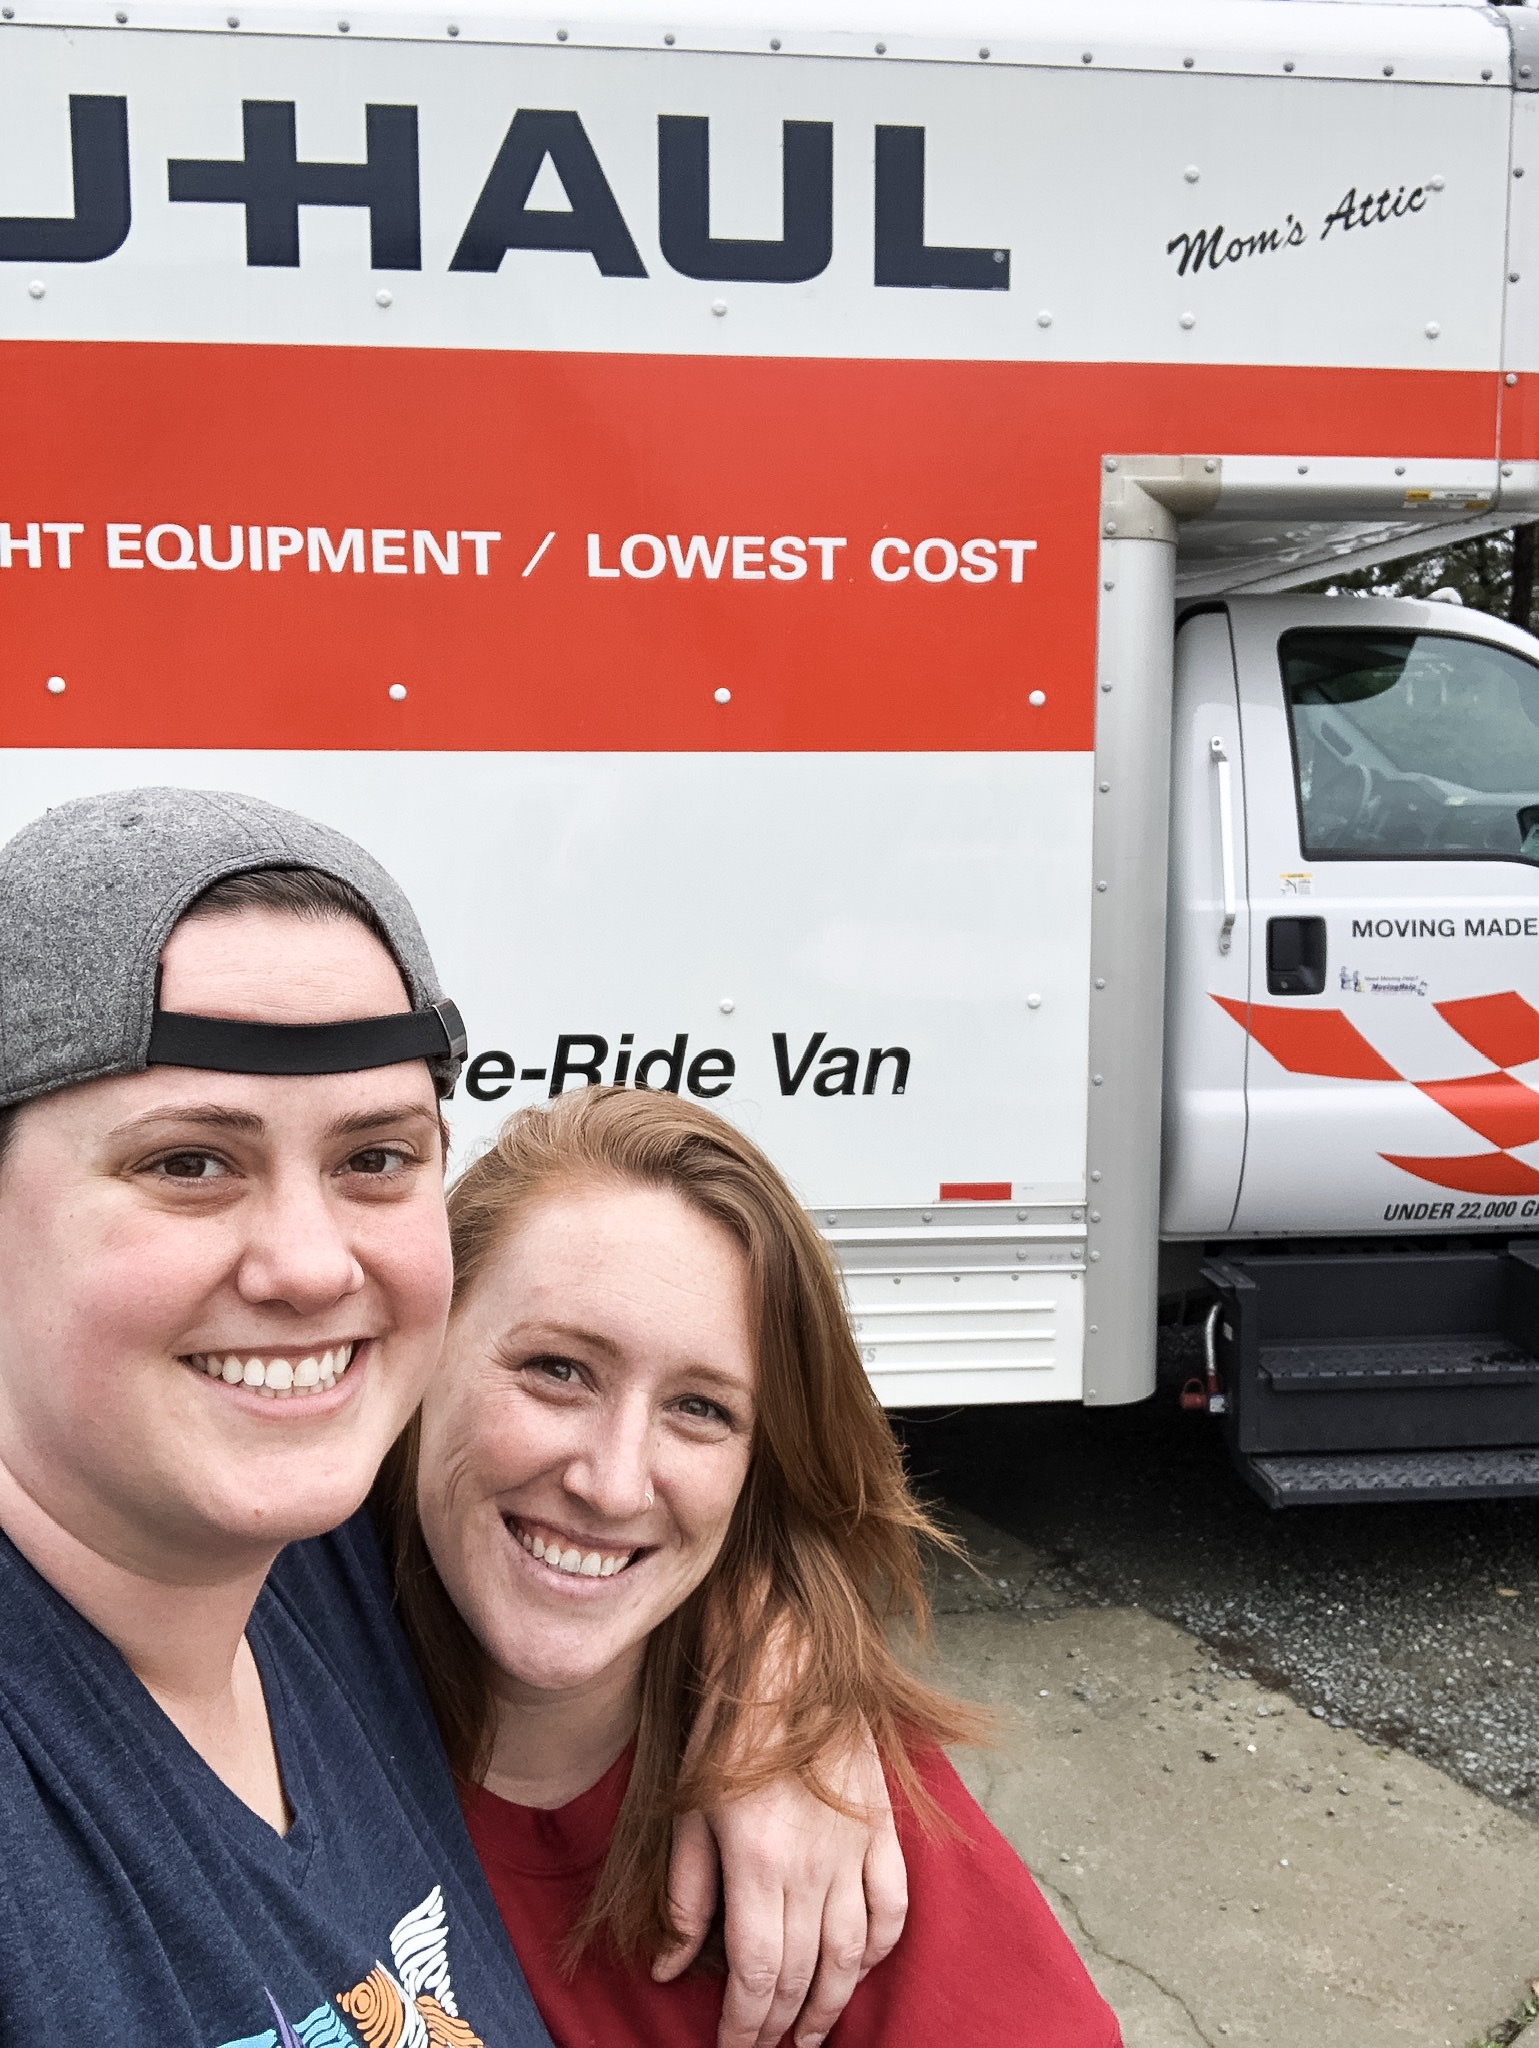 A photo of a couple standing in front of a uhaul truck.